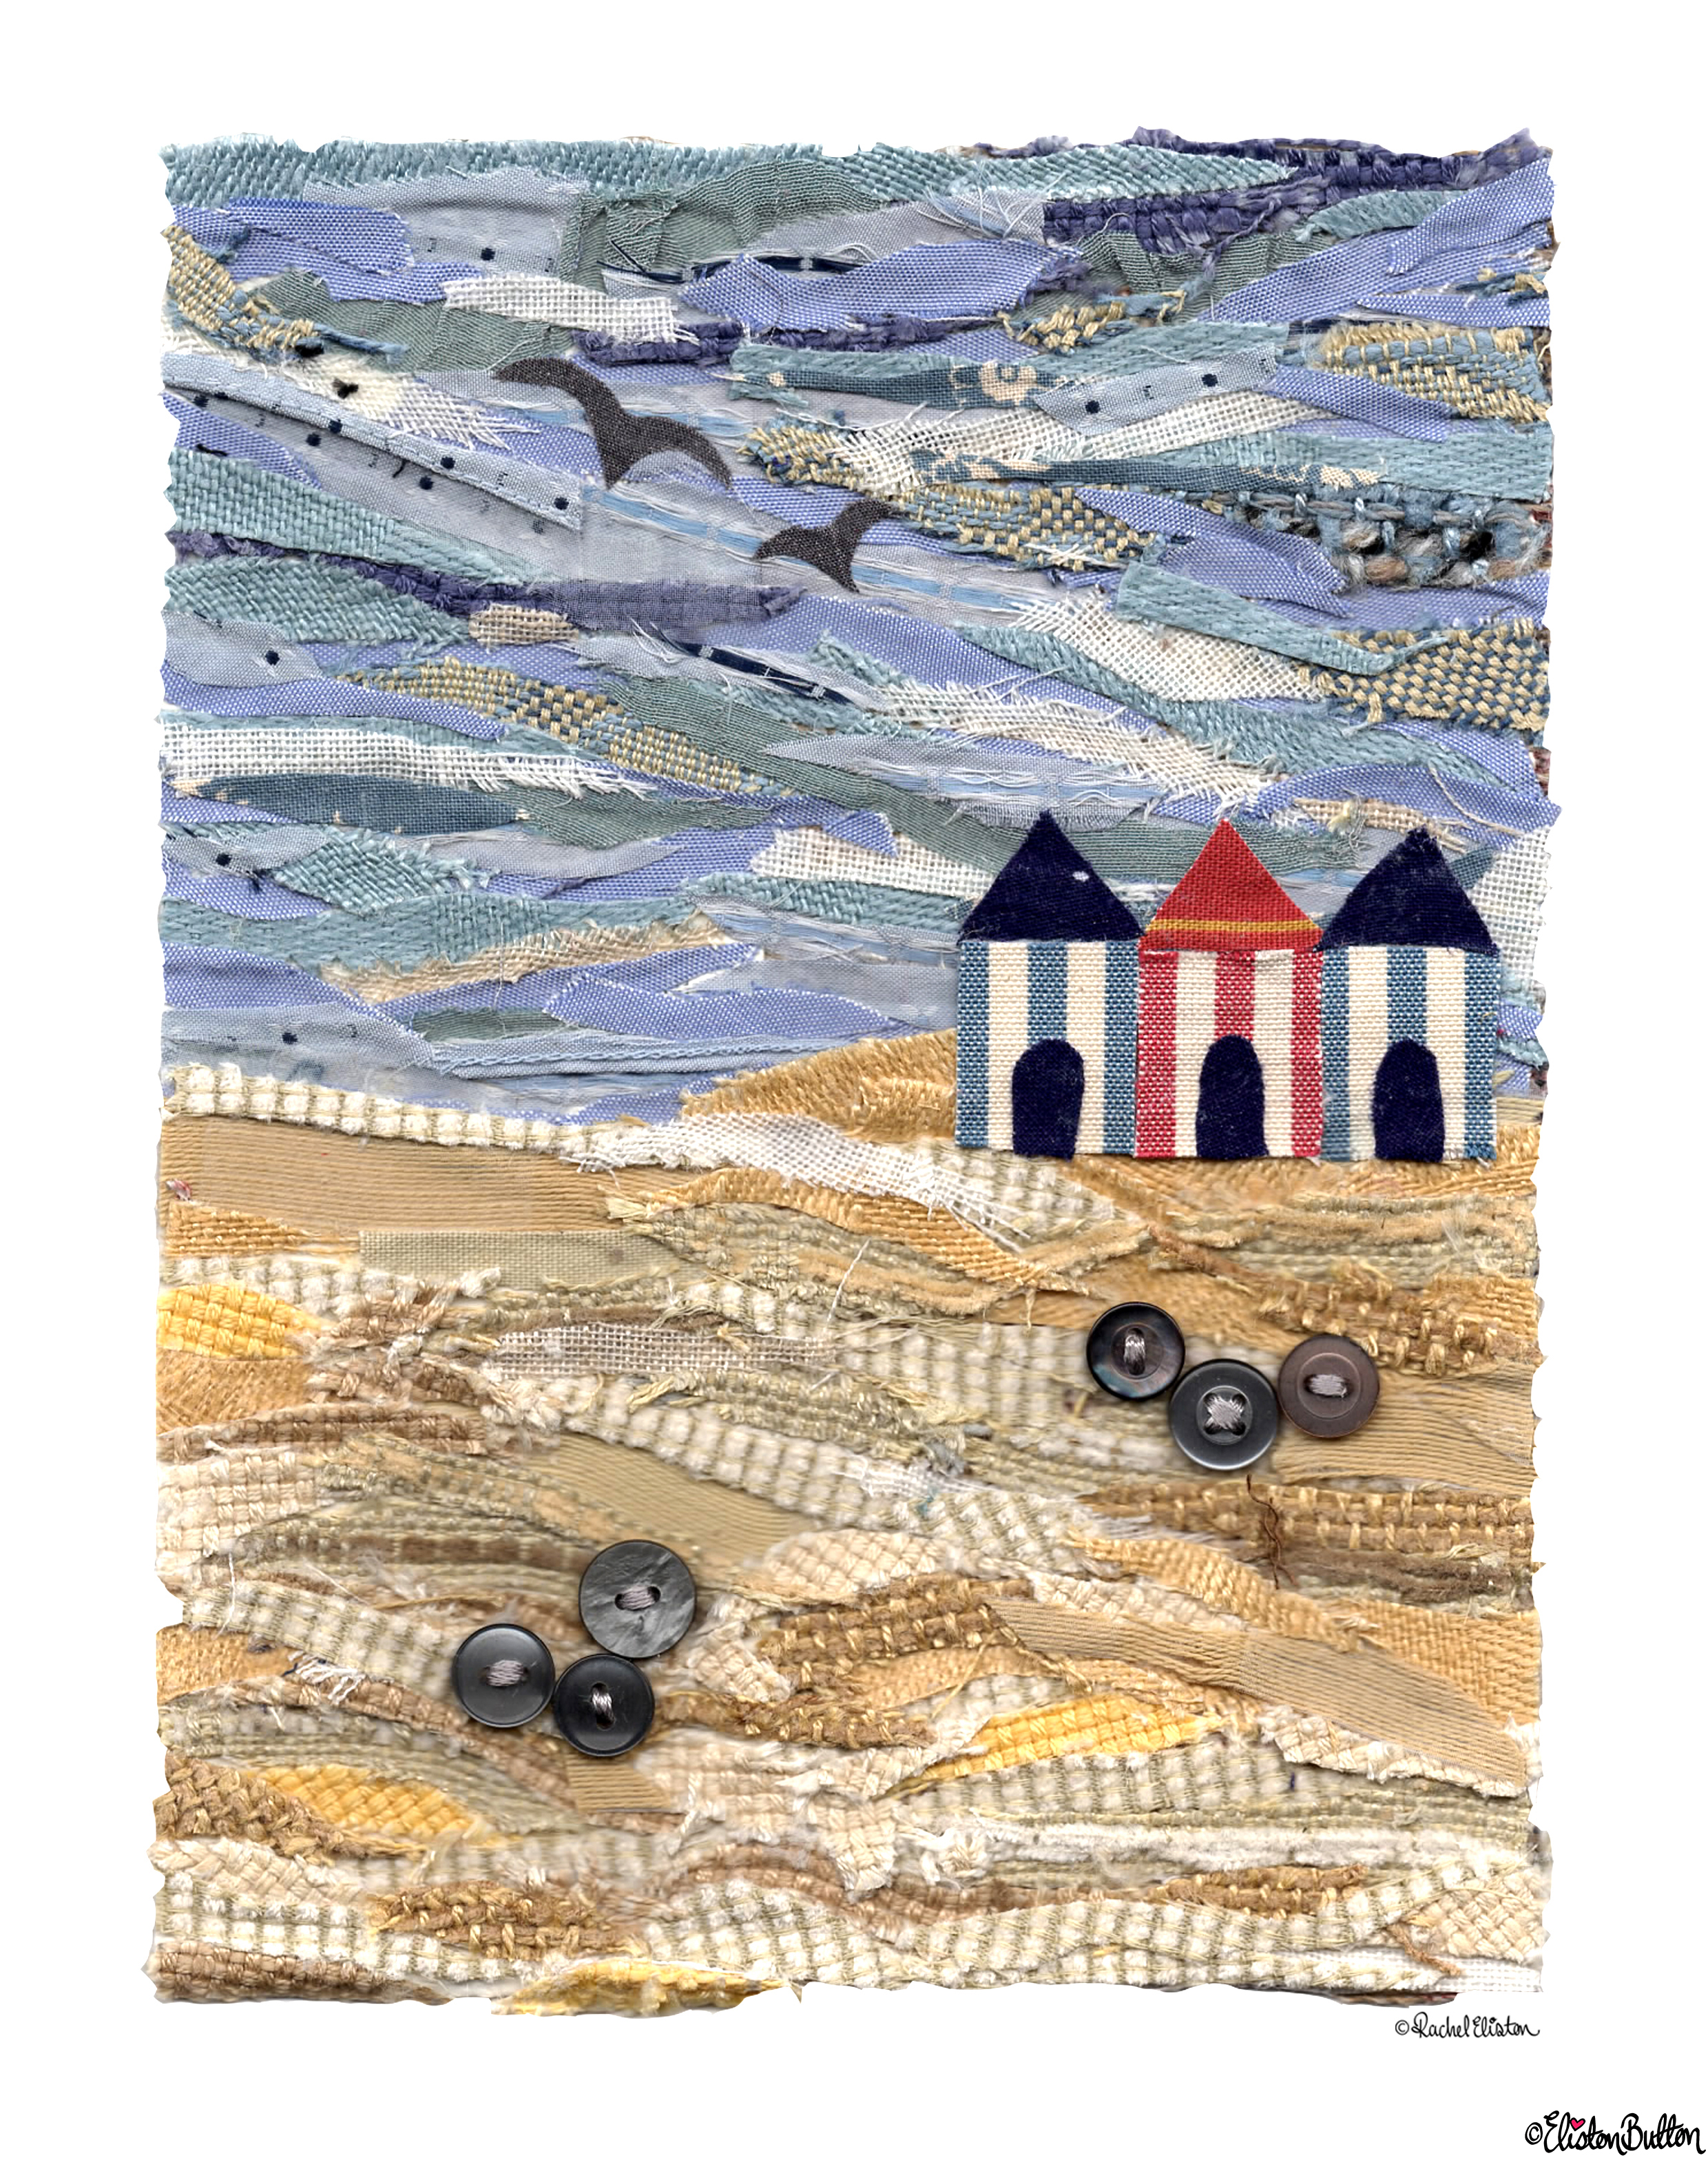 Final Beach Hut Fabric Collage with Copyright - Beach Huts Fabric Collage Art Print at www.elistonbutton.com - Eliston Button - That Crafty Kid – Art, Design, Craft & Adventure.